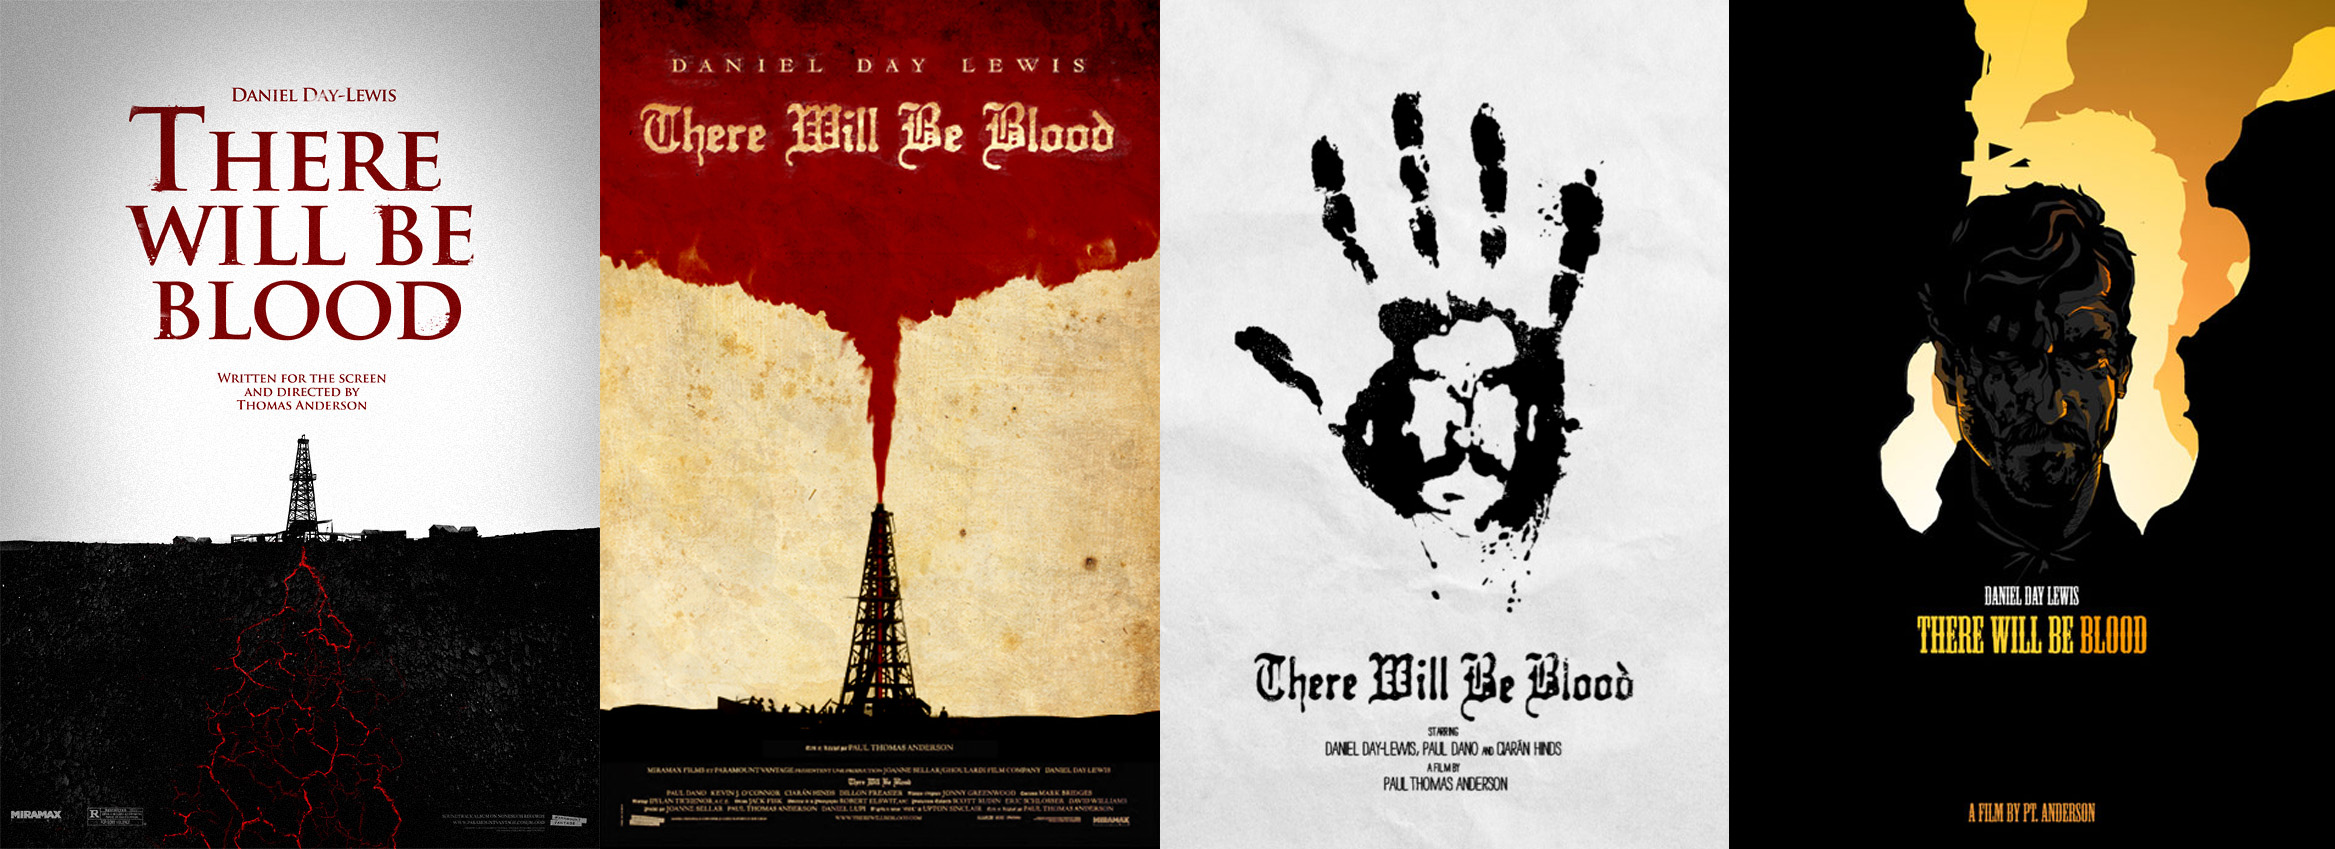 There Will Be Blood – Poster Art | socialpsychol